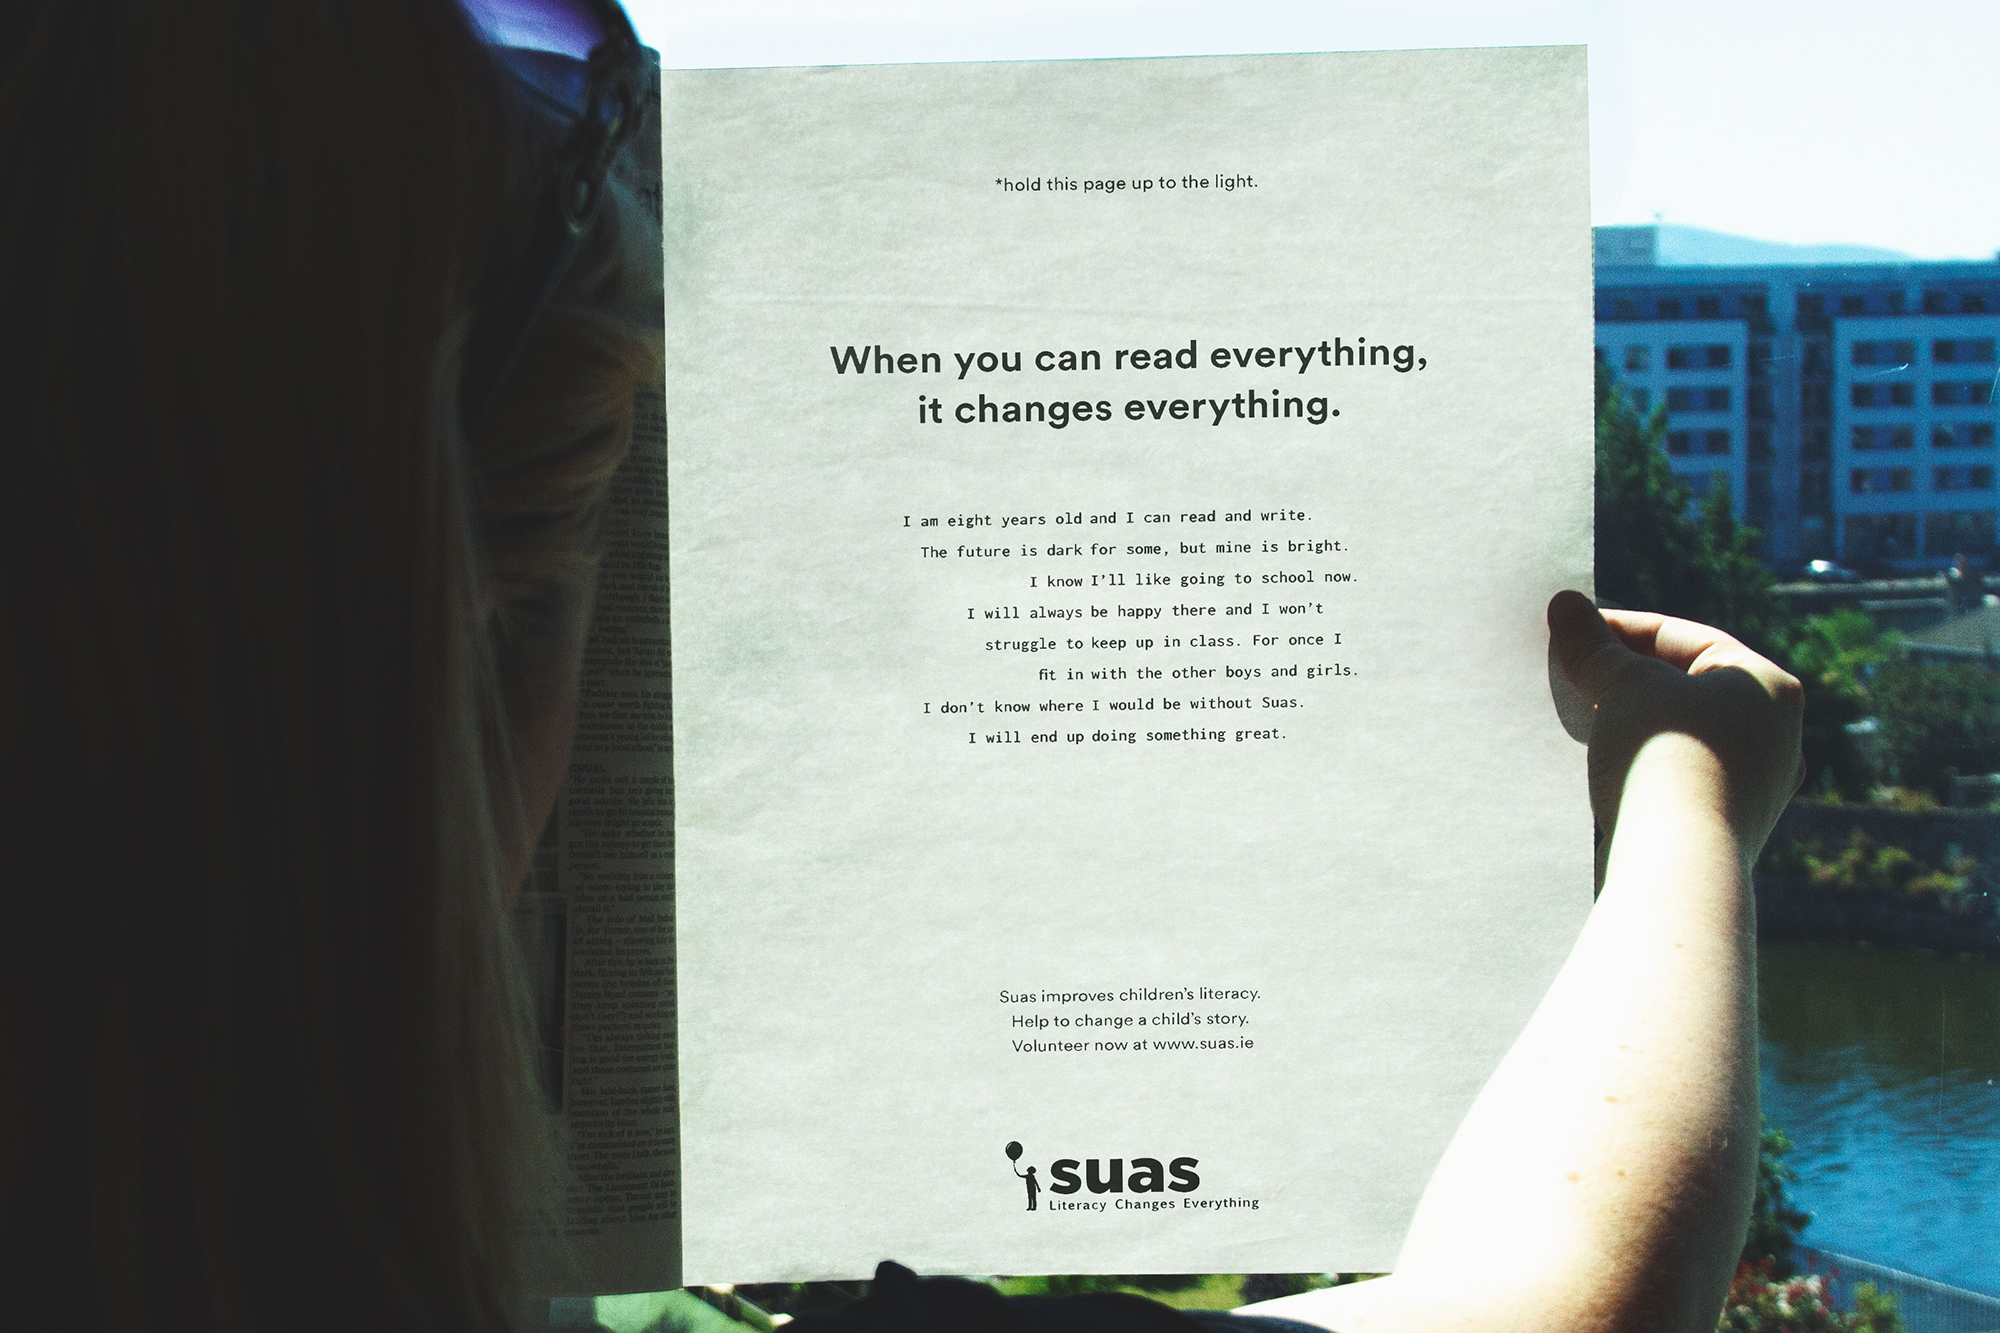 Cover image: When you can read everything, it changes everything